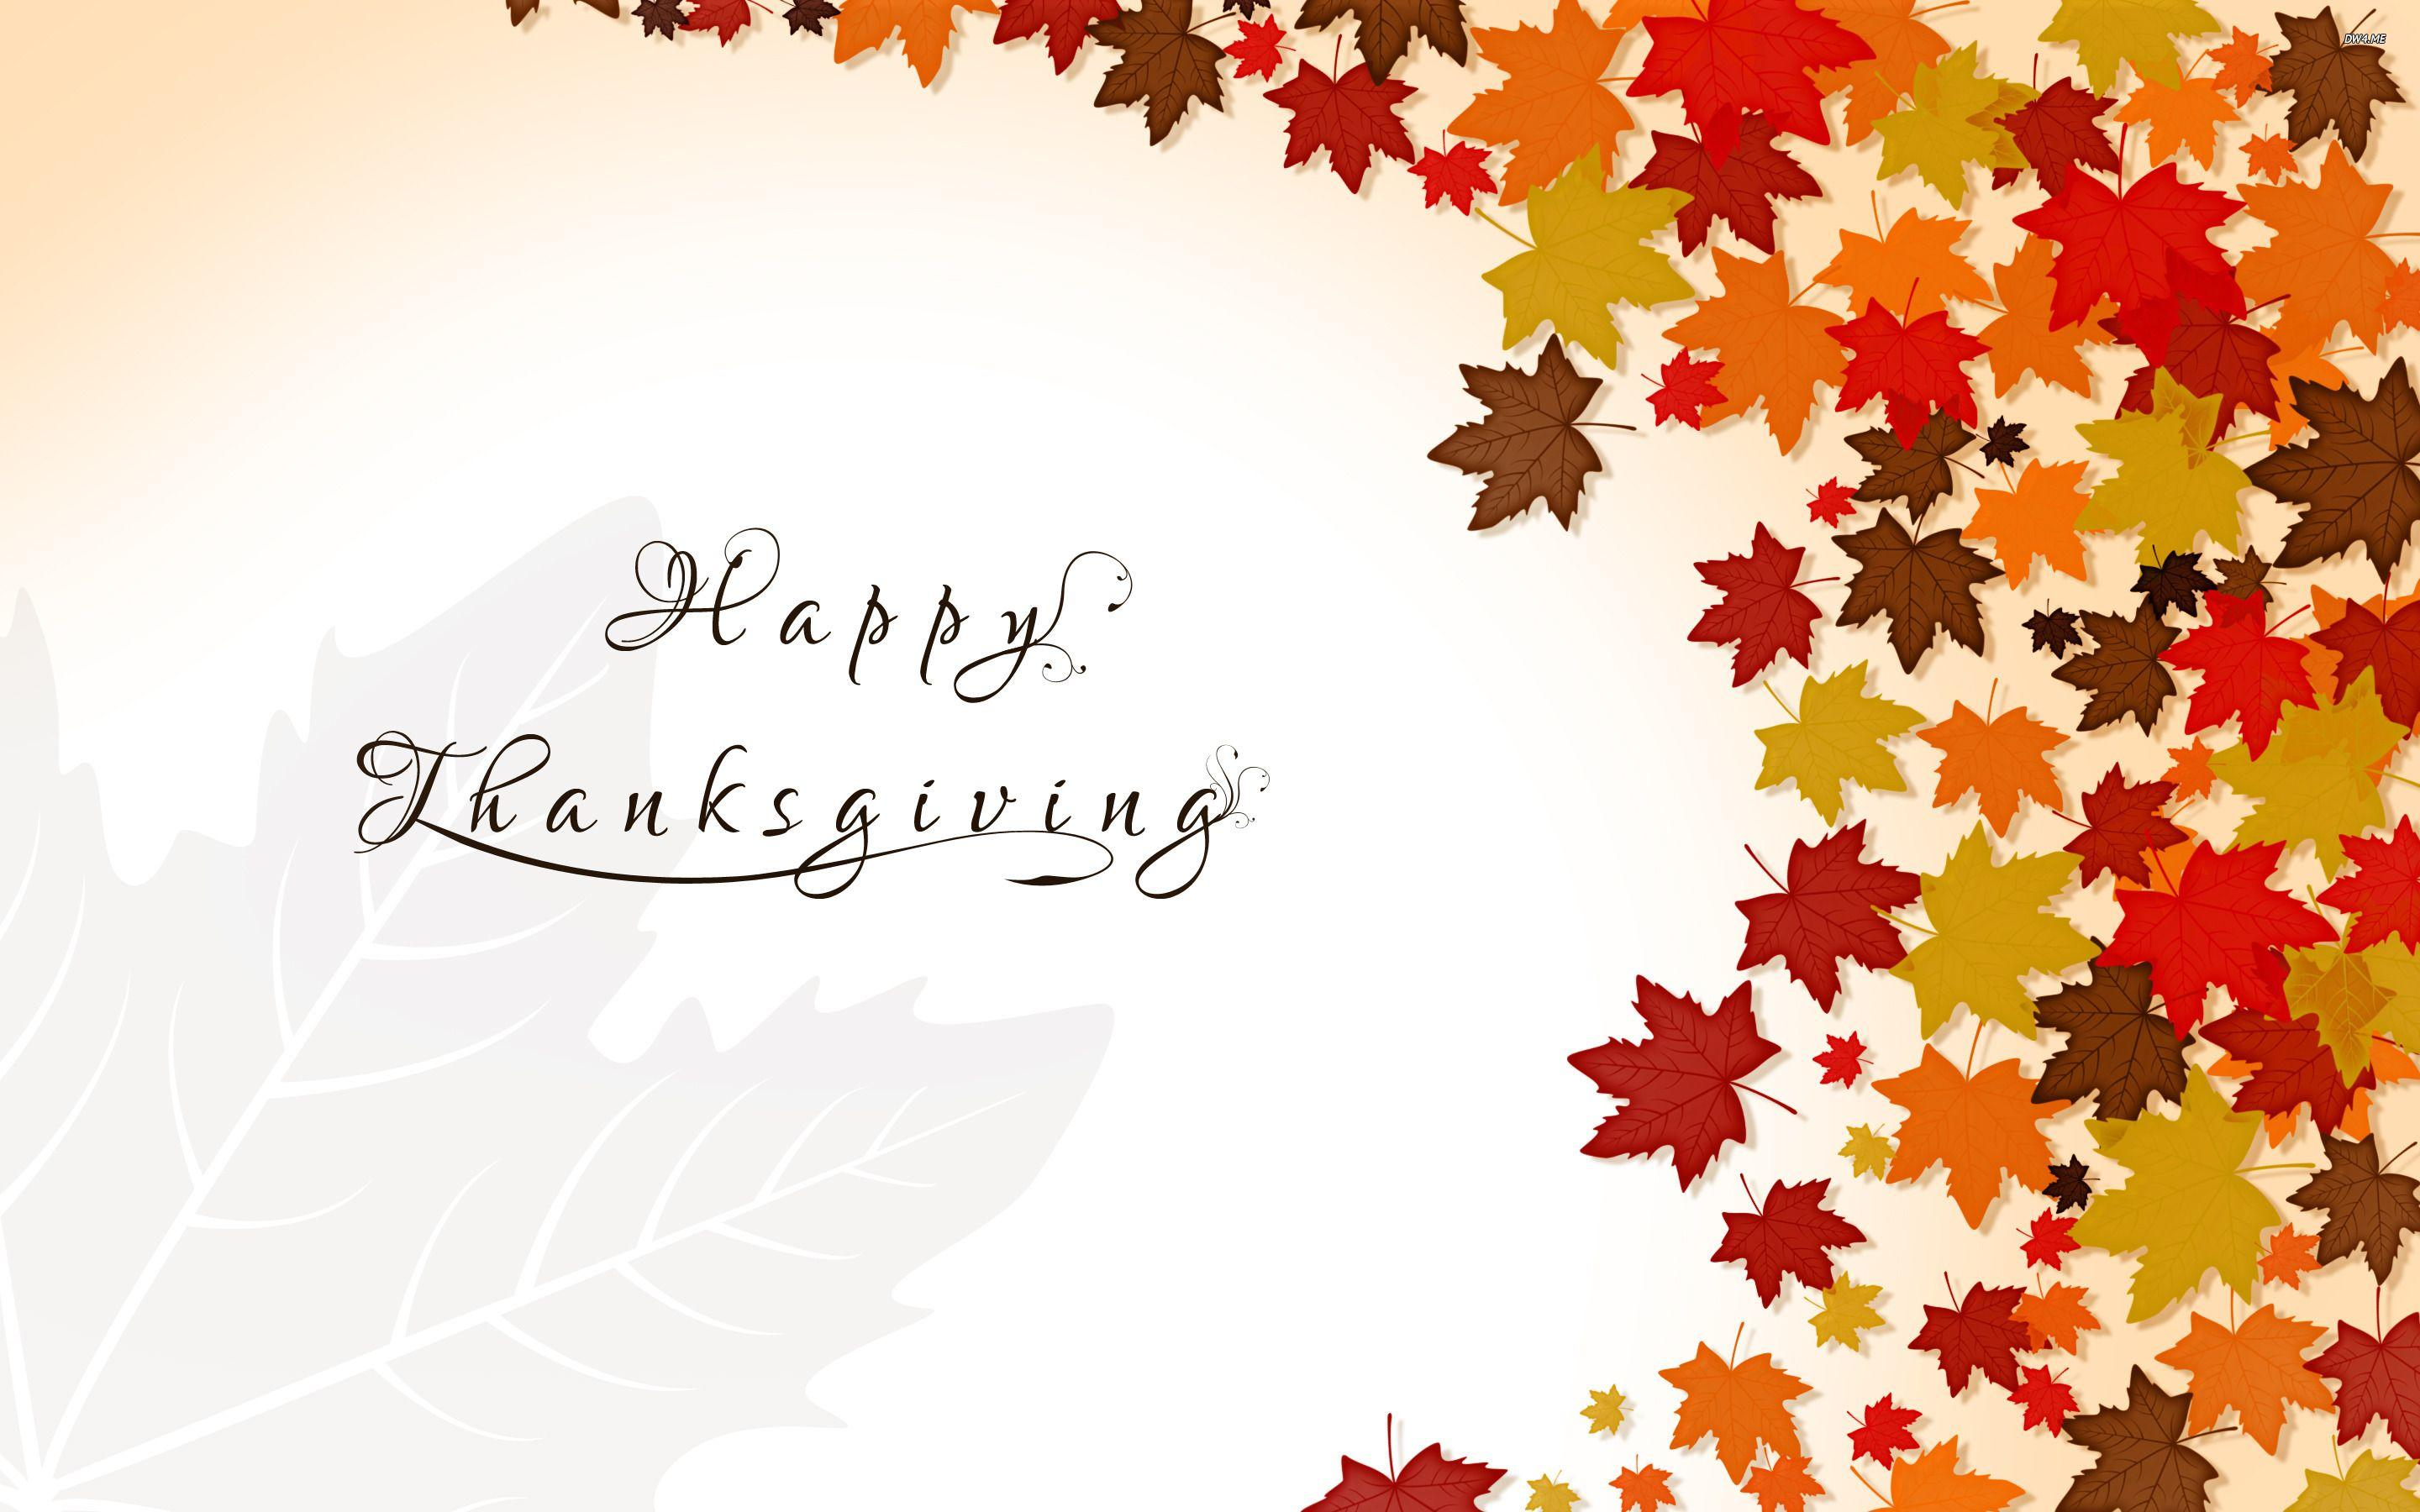 Fonds d&Thanksgiving : tous les wallpapers Thanksgiving